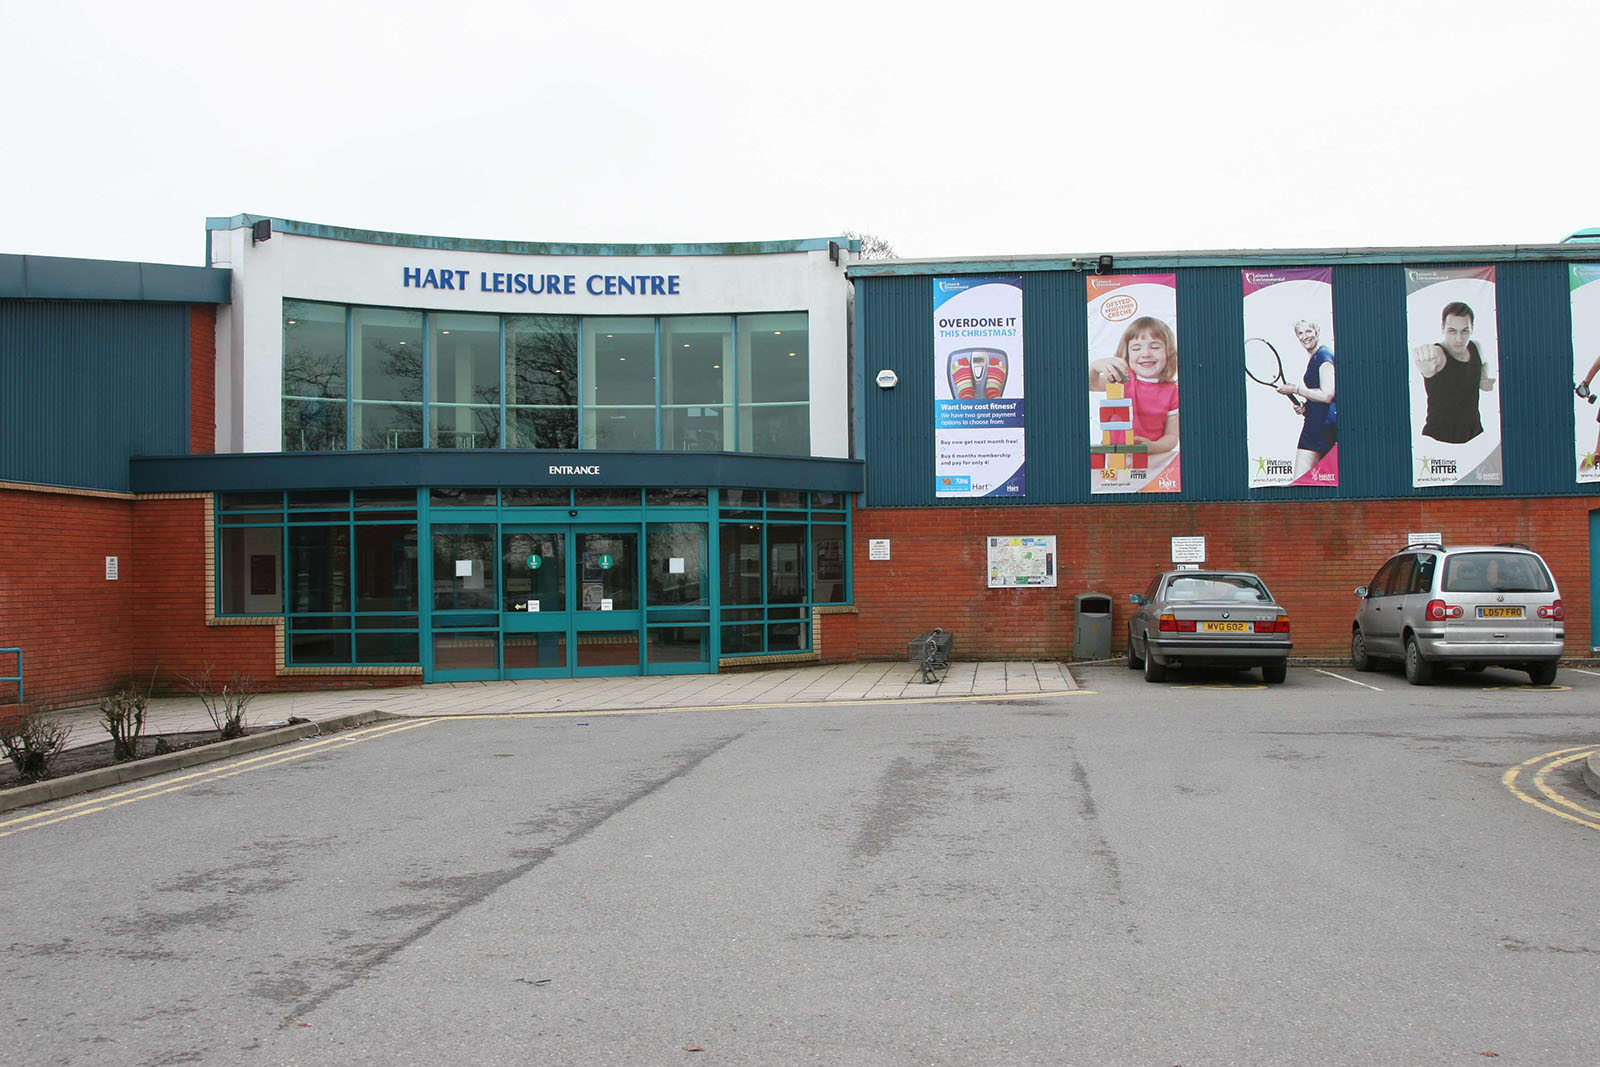 Entrance to Hart Leisure Centre, in the north of the square.